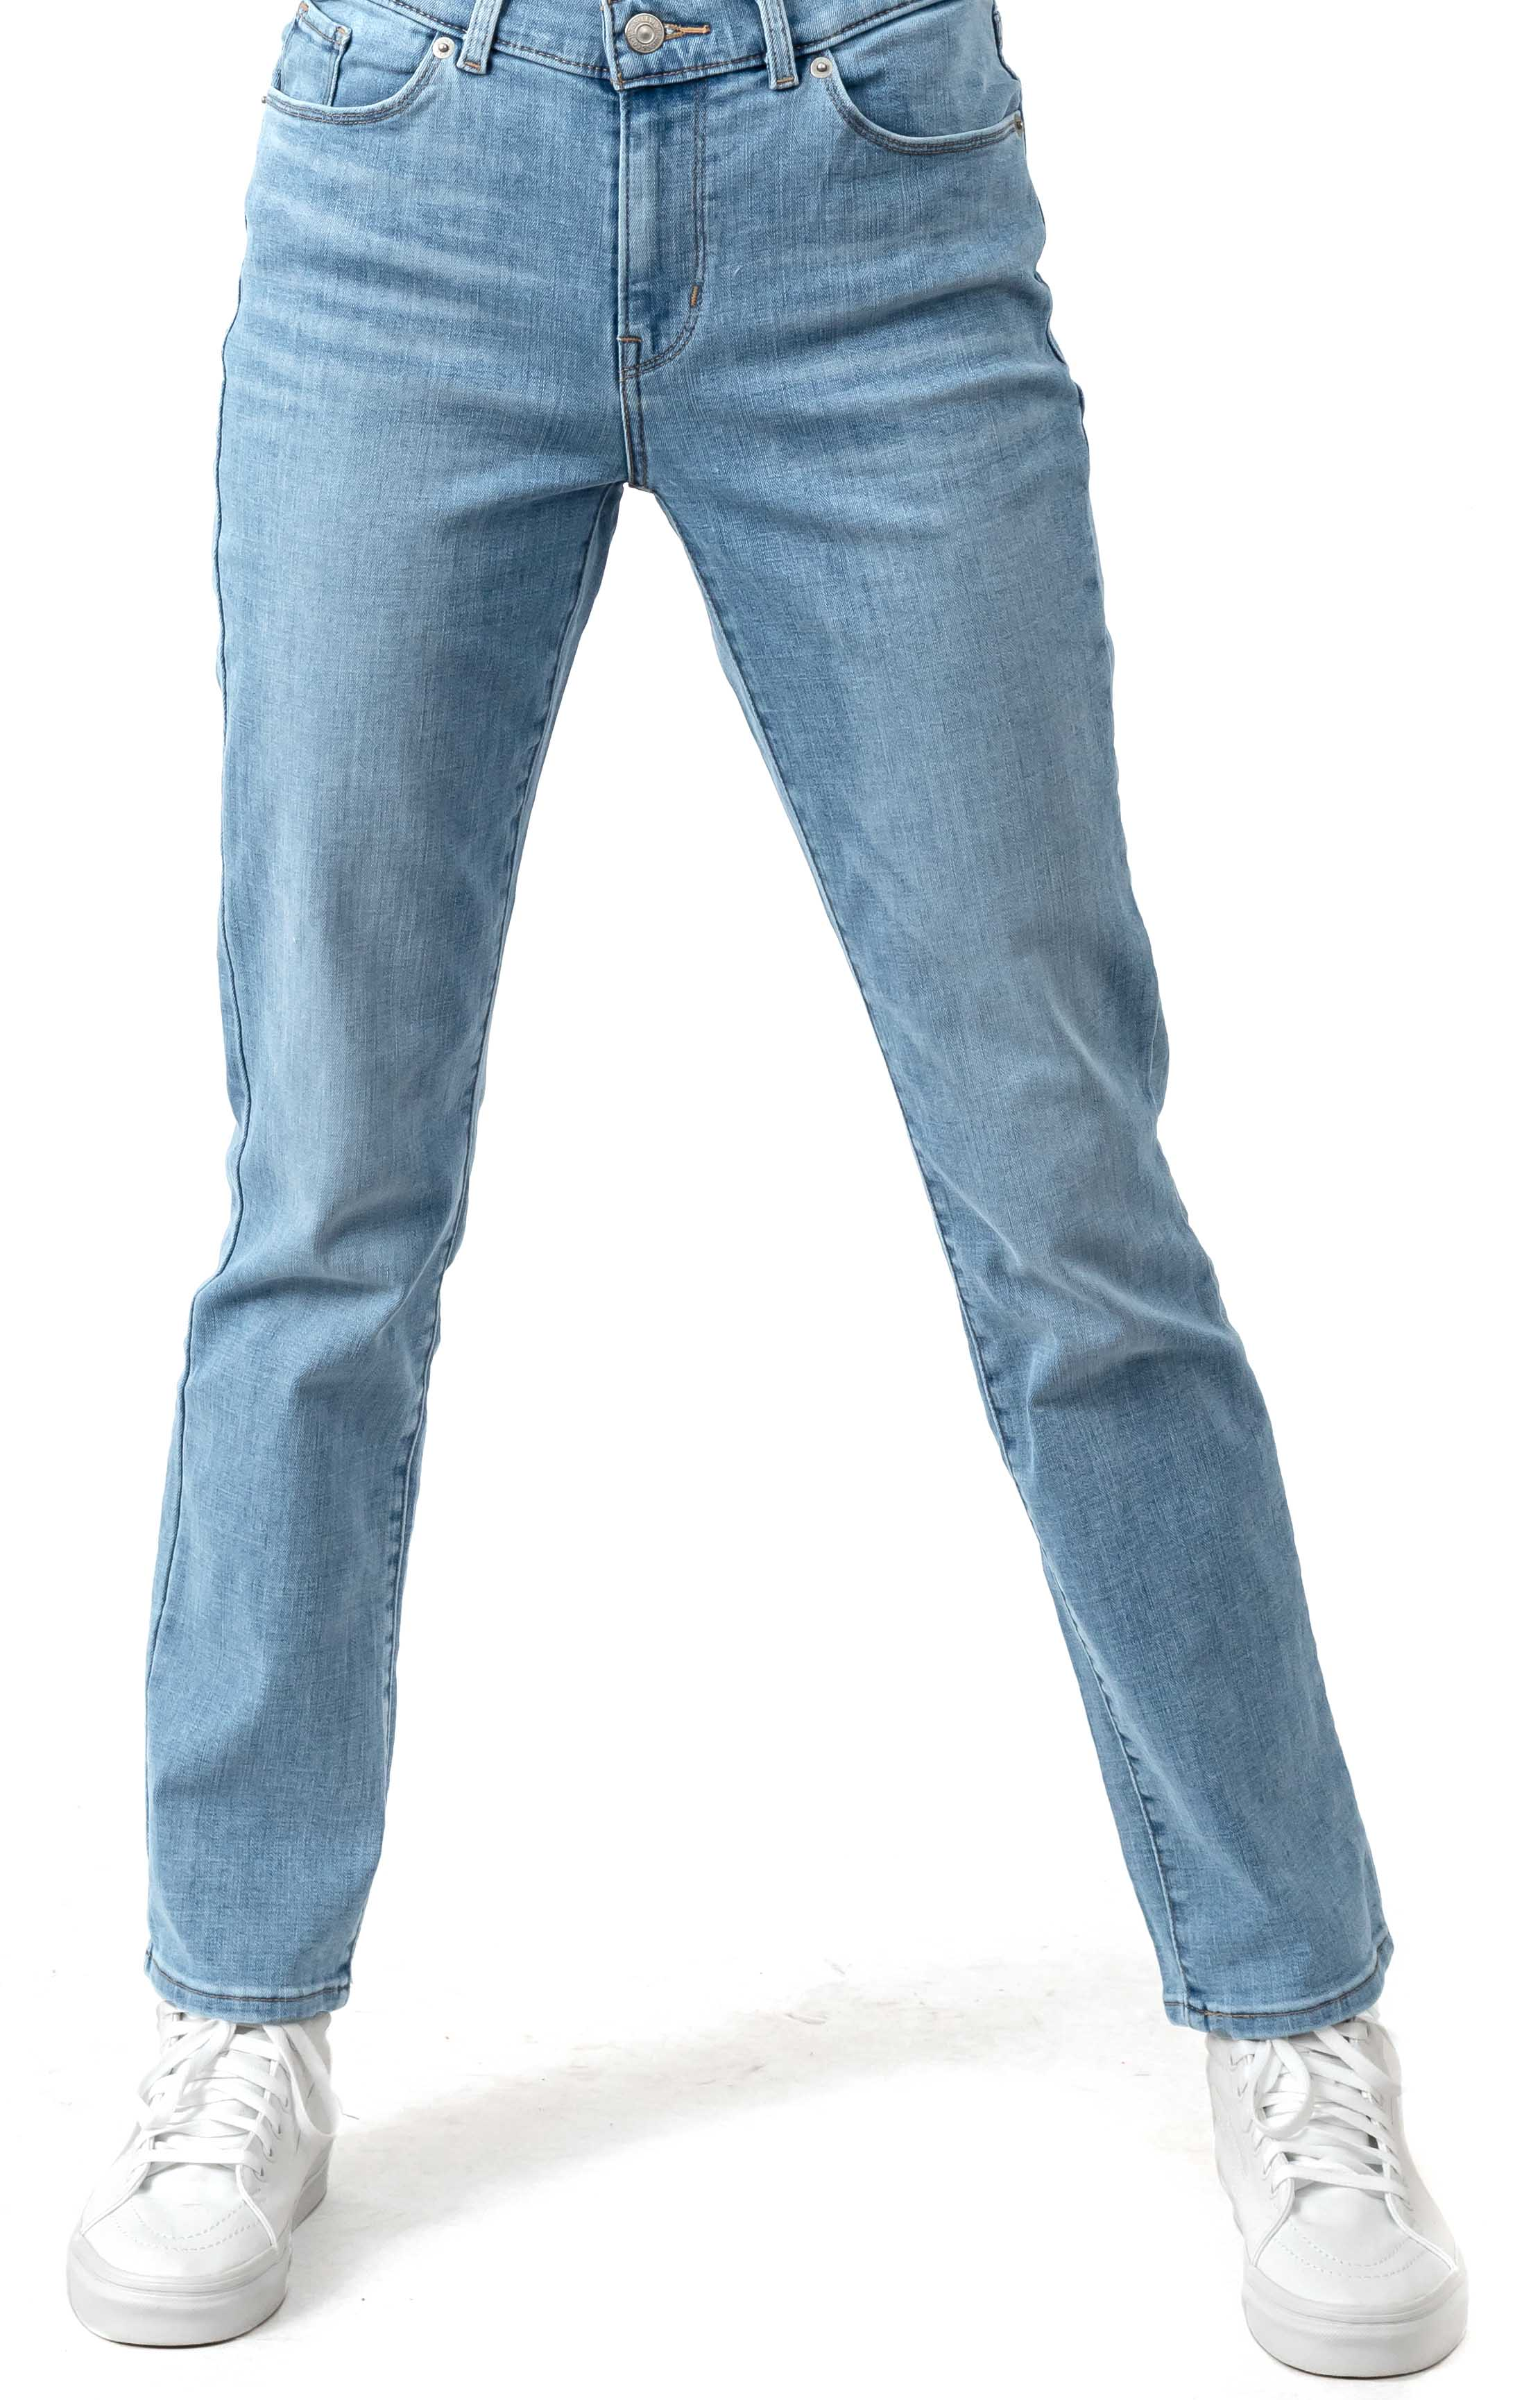 Classic Straight Slate Jeans - Oahu Morning Dew 2